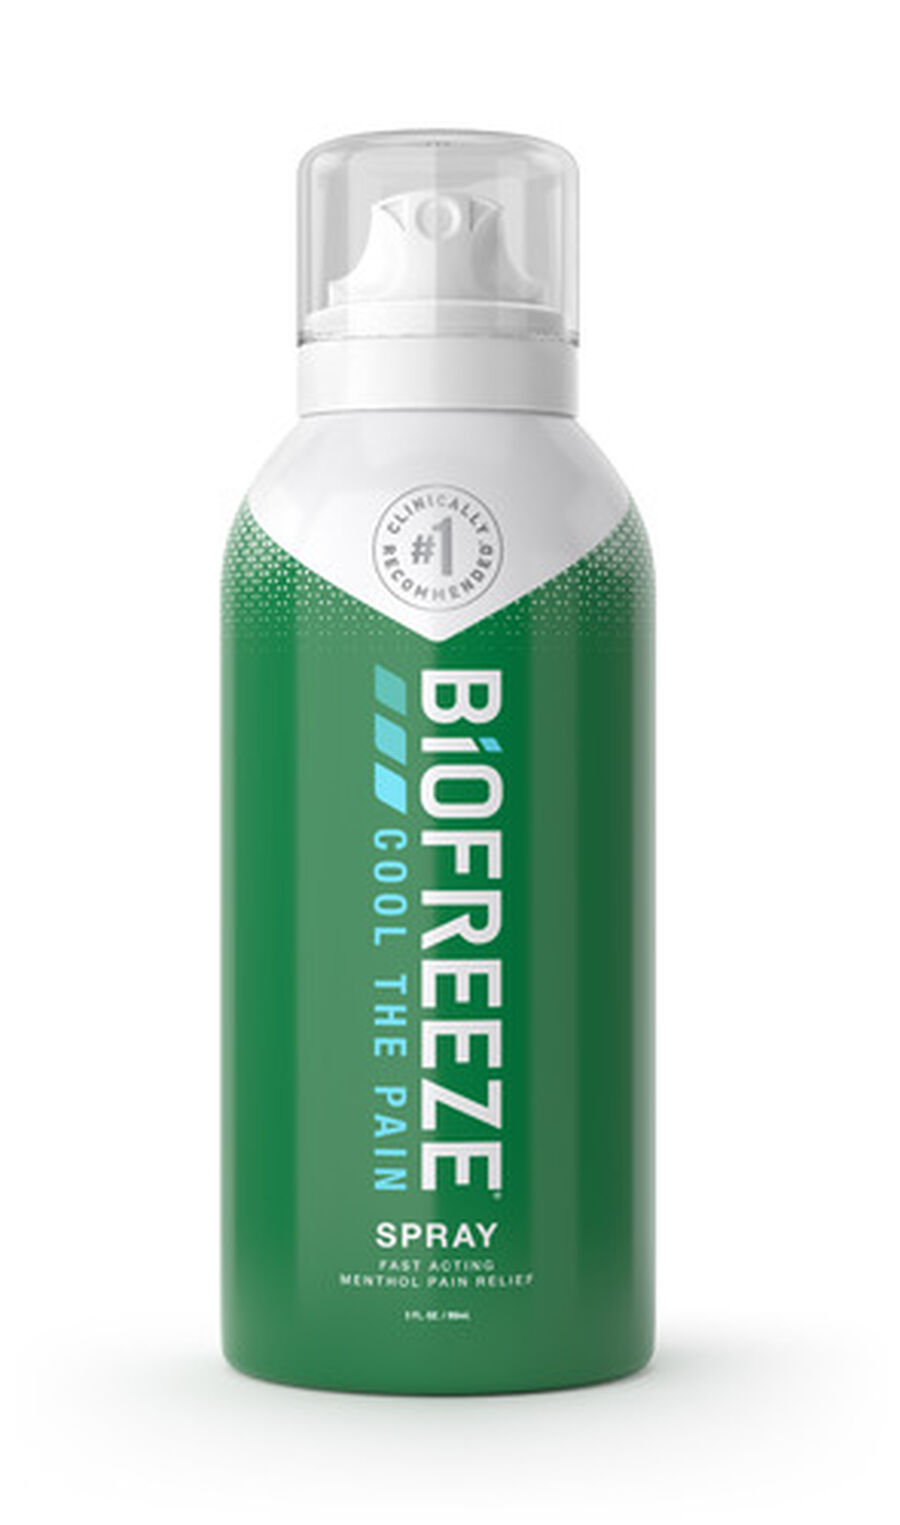 Biofreeze Pain Relieving 360 Spray, 3 oz, , large image number 0